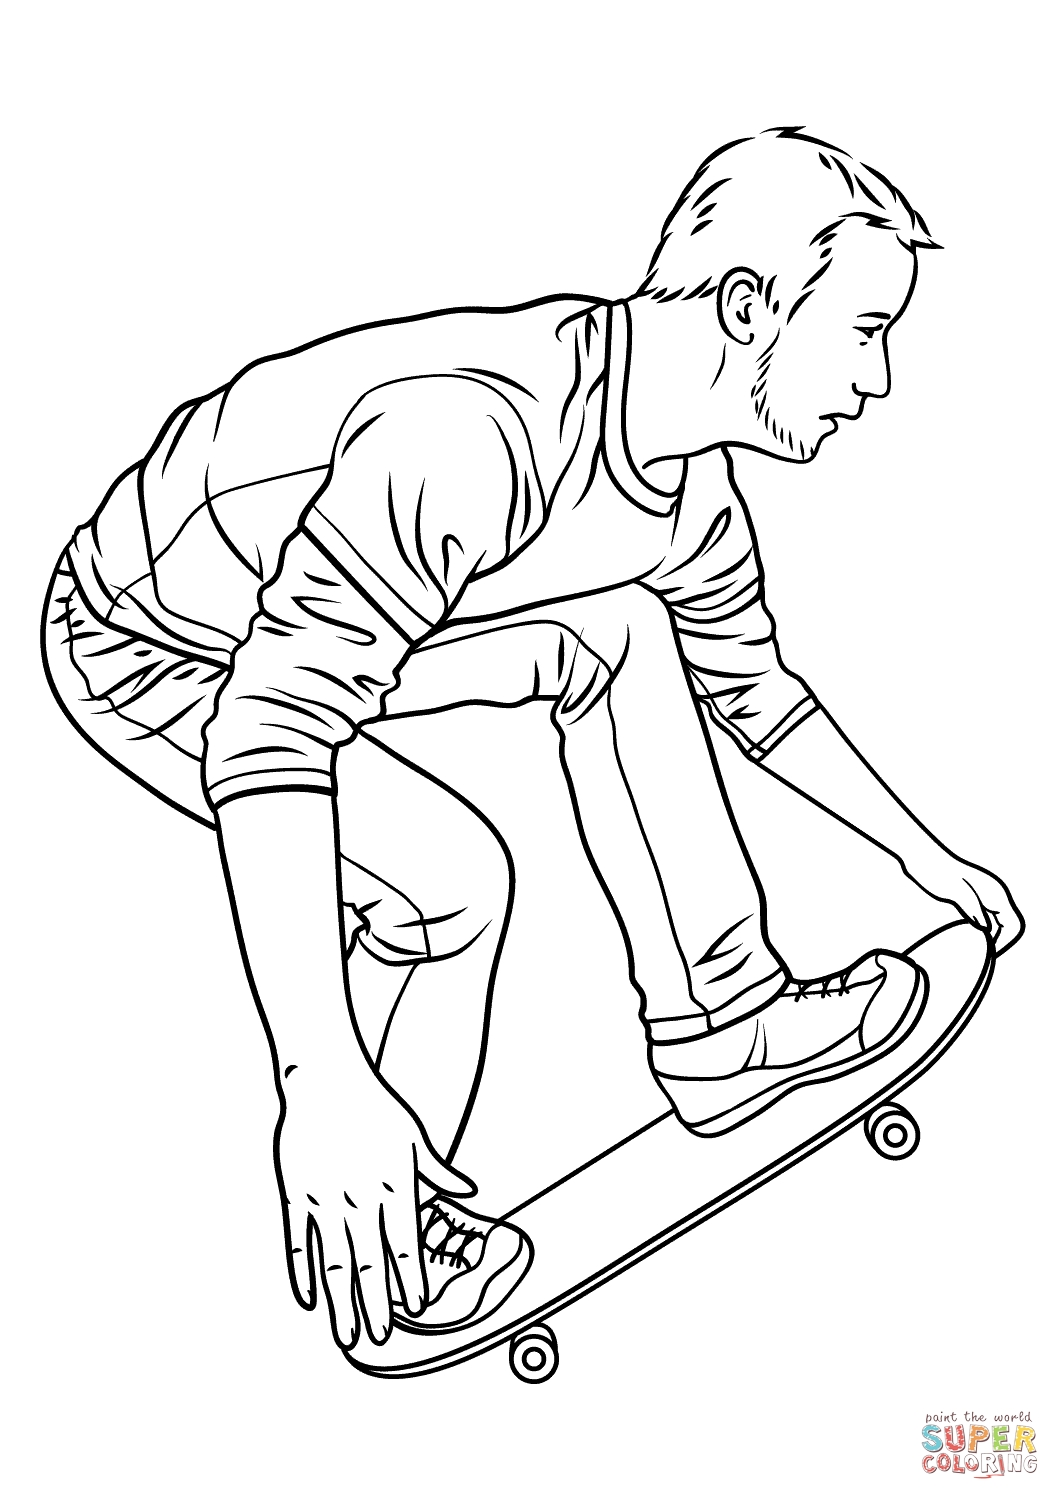 1060x1500 Tony Hawk Coloring Pages Free Coloring For Kids